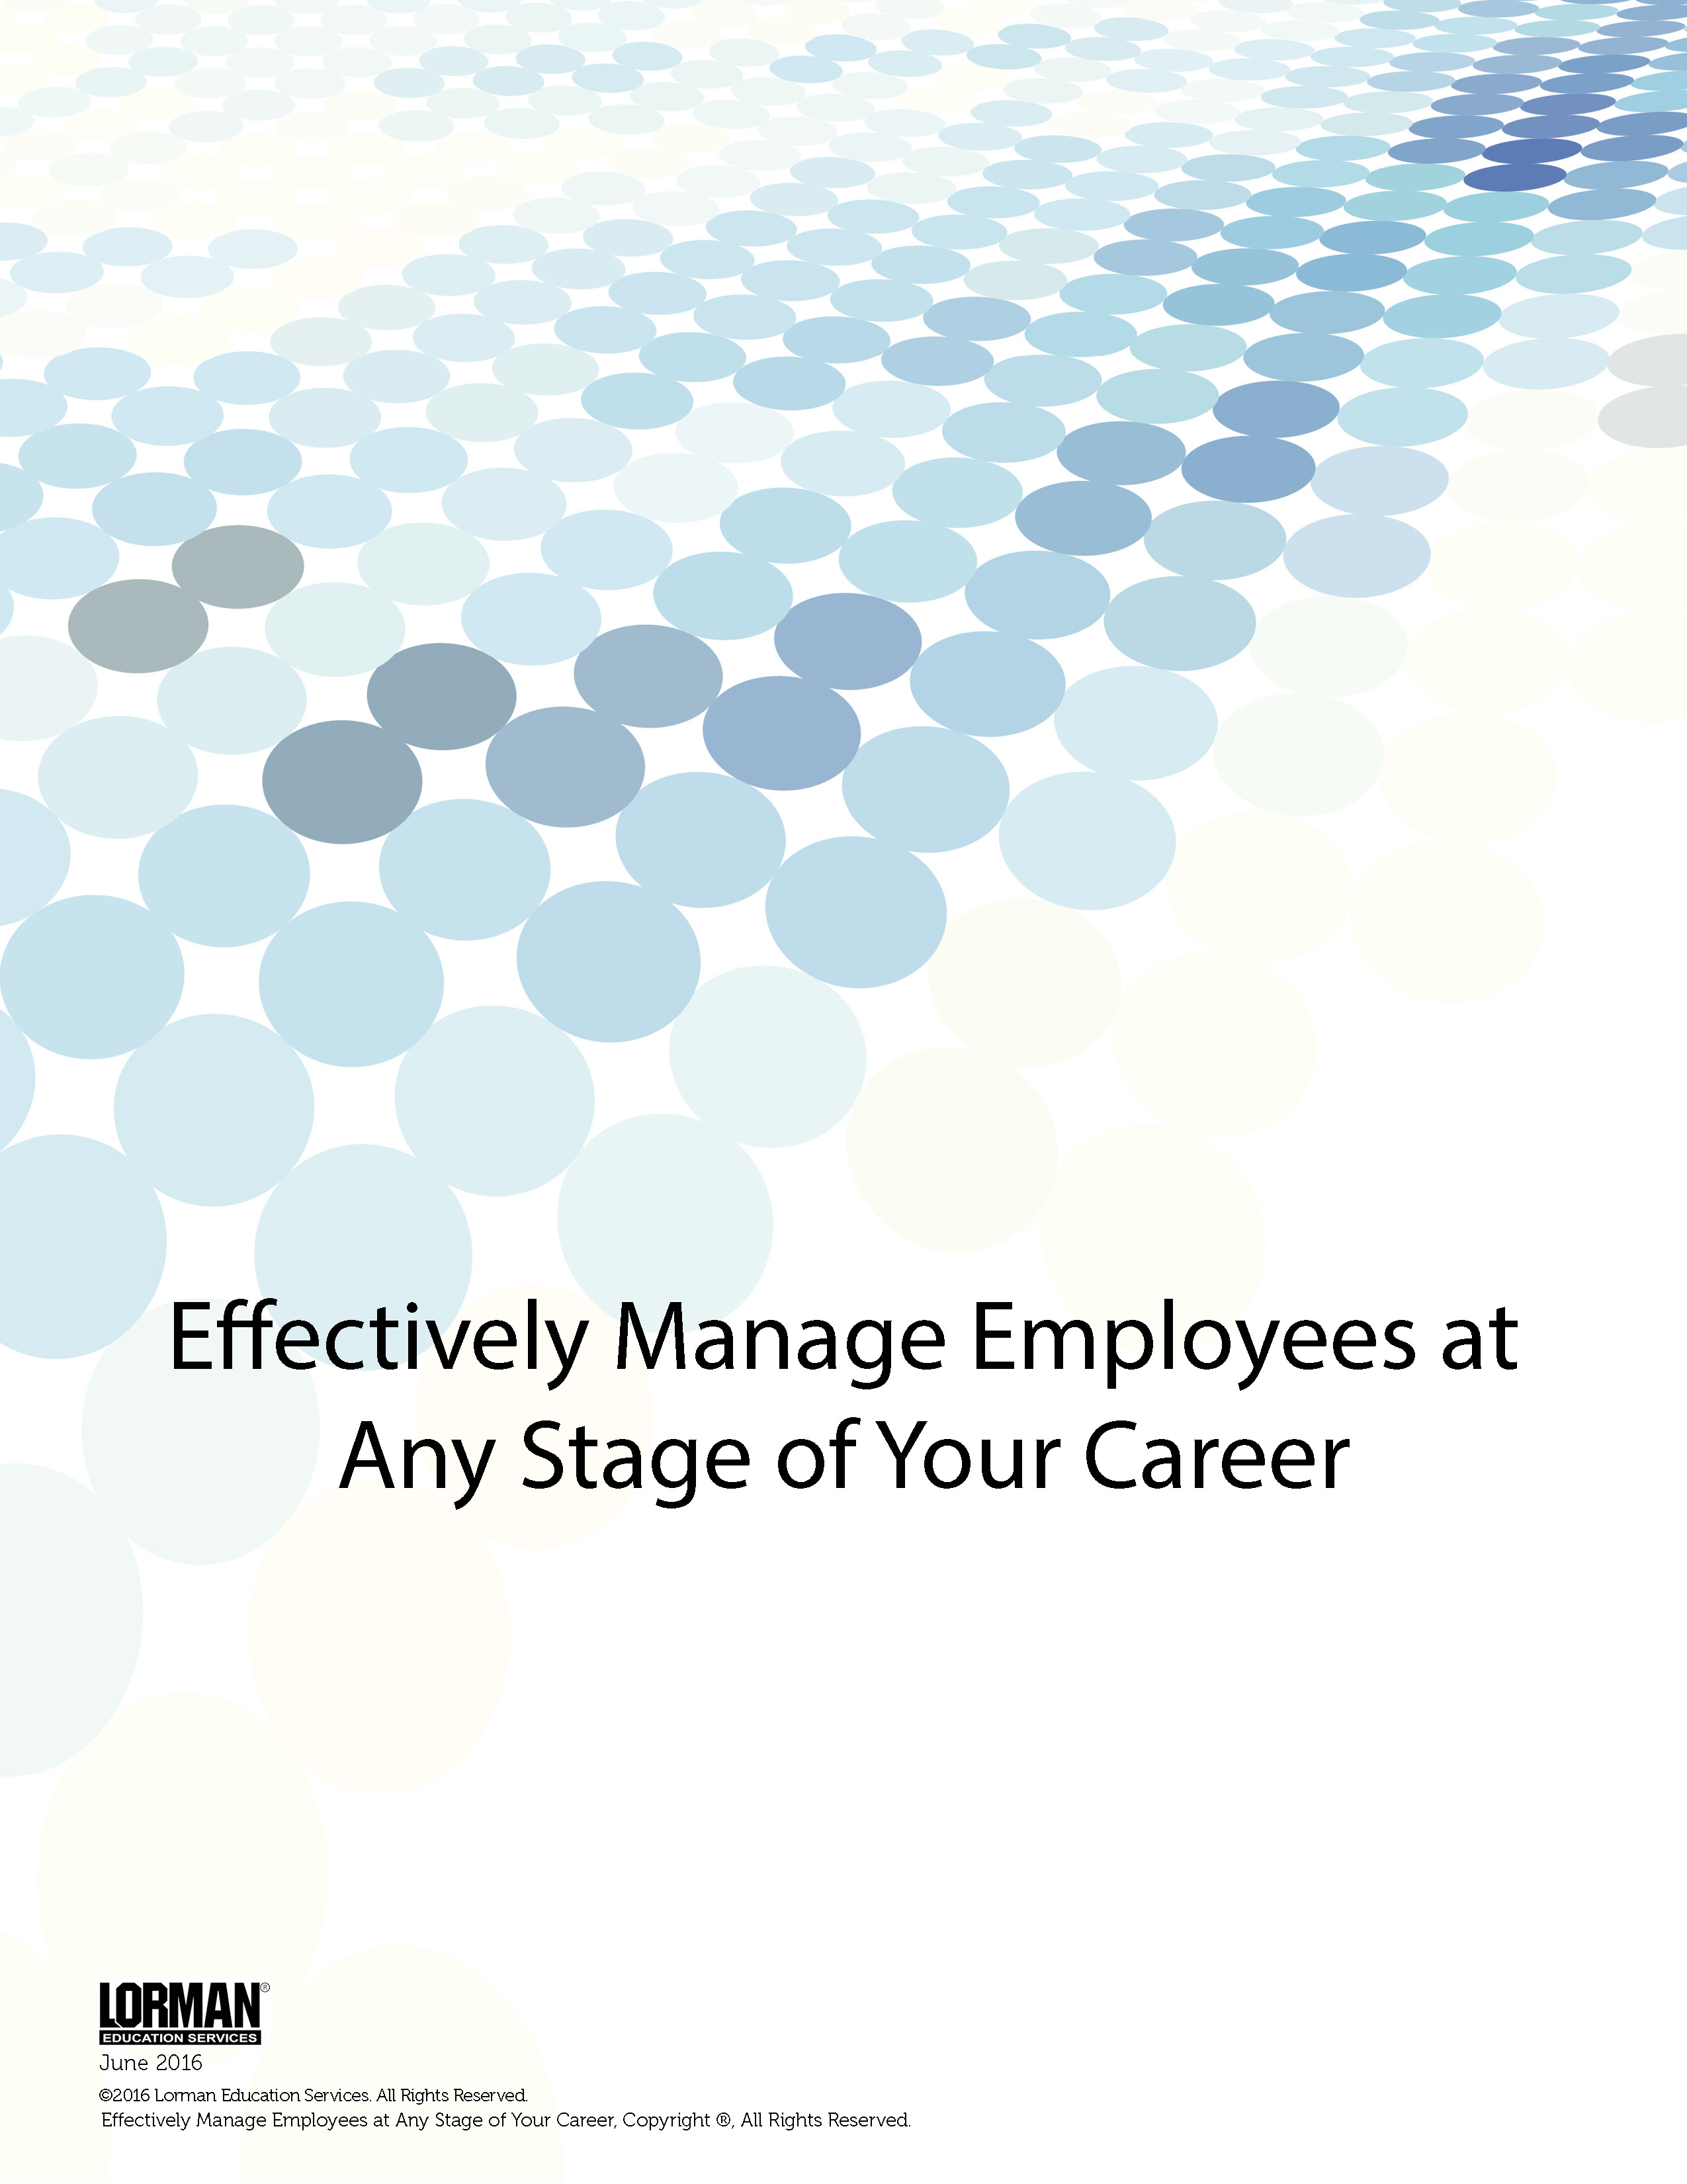 Effectively Manage Employees at Any Stage of Your Career